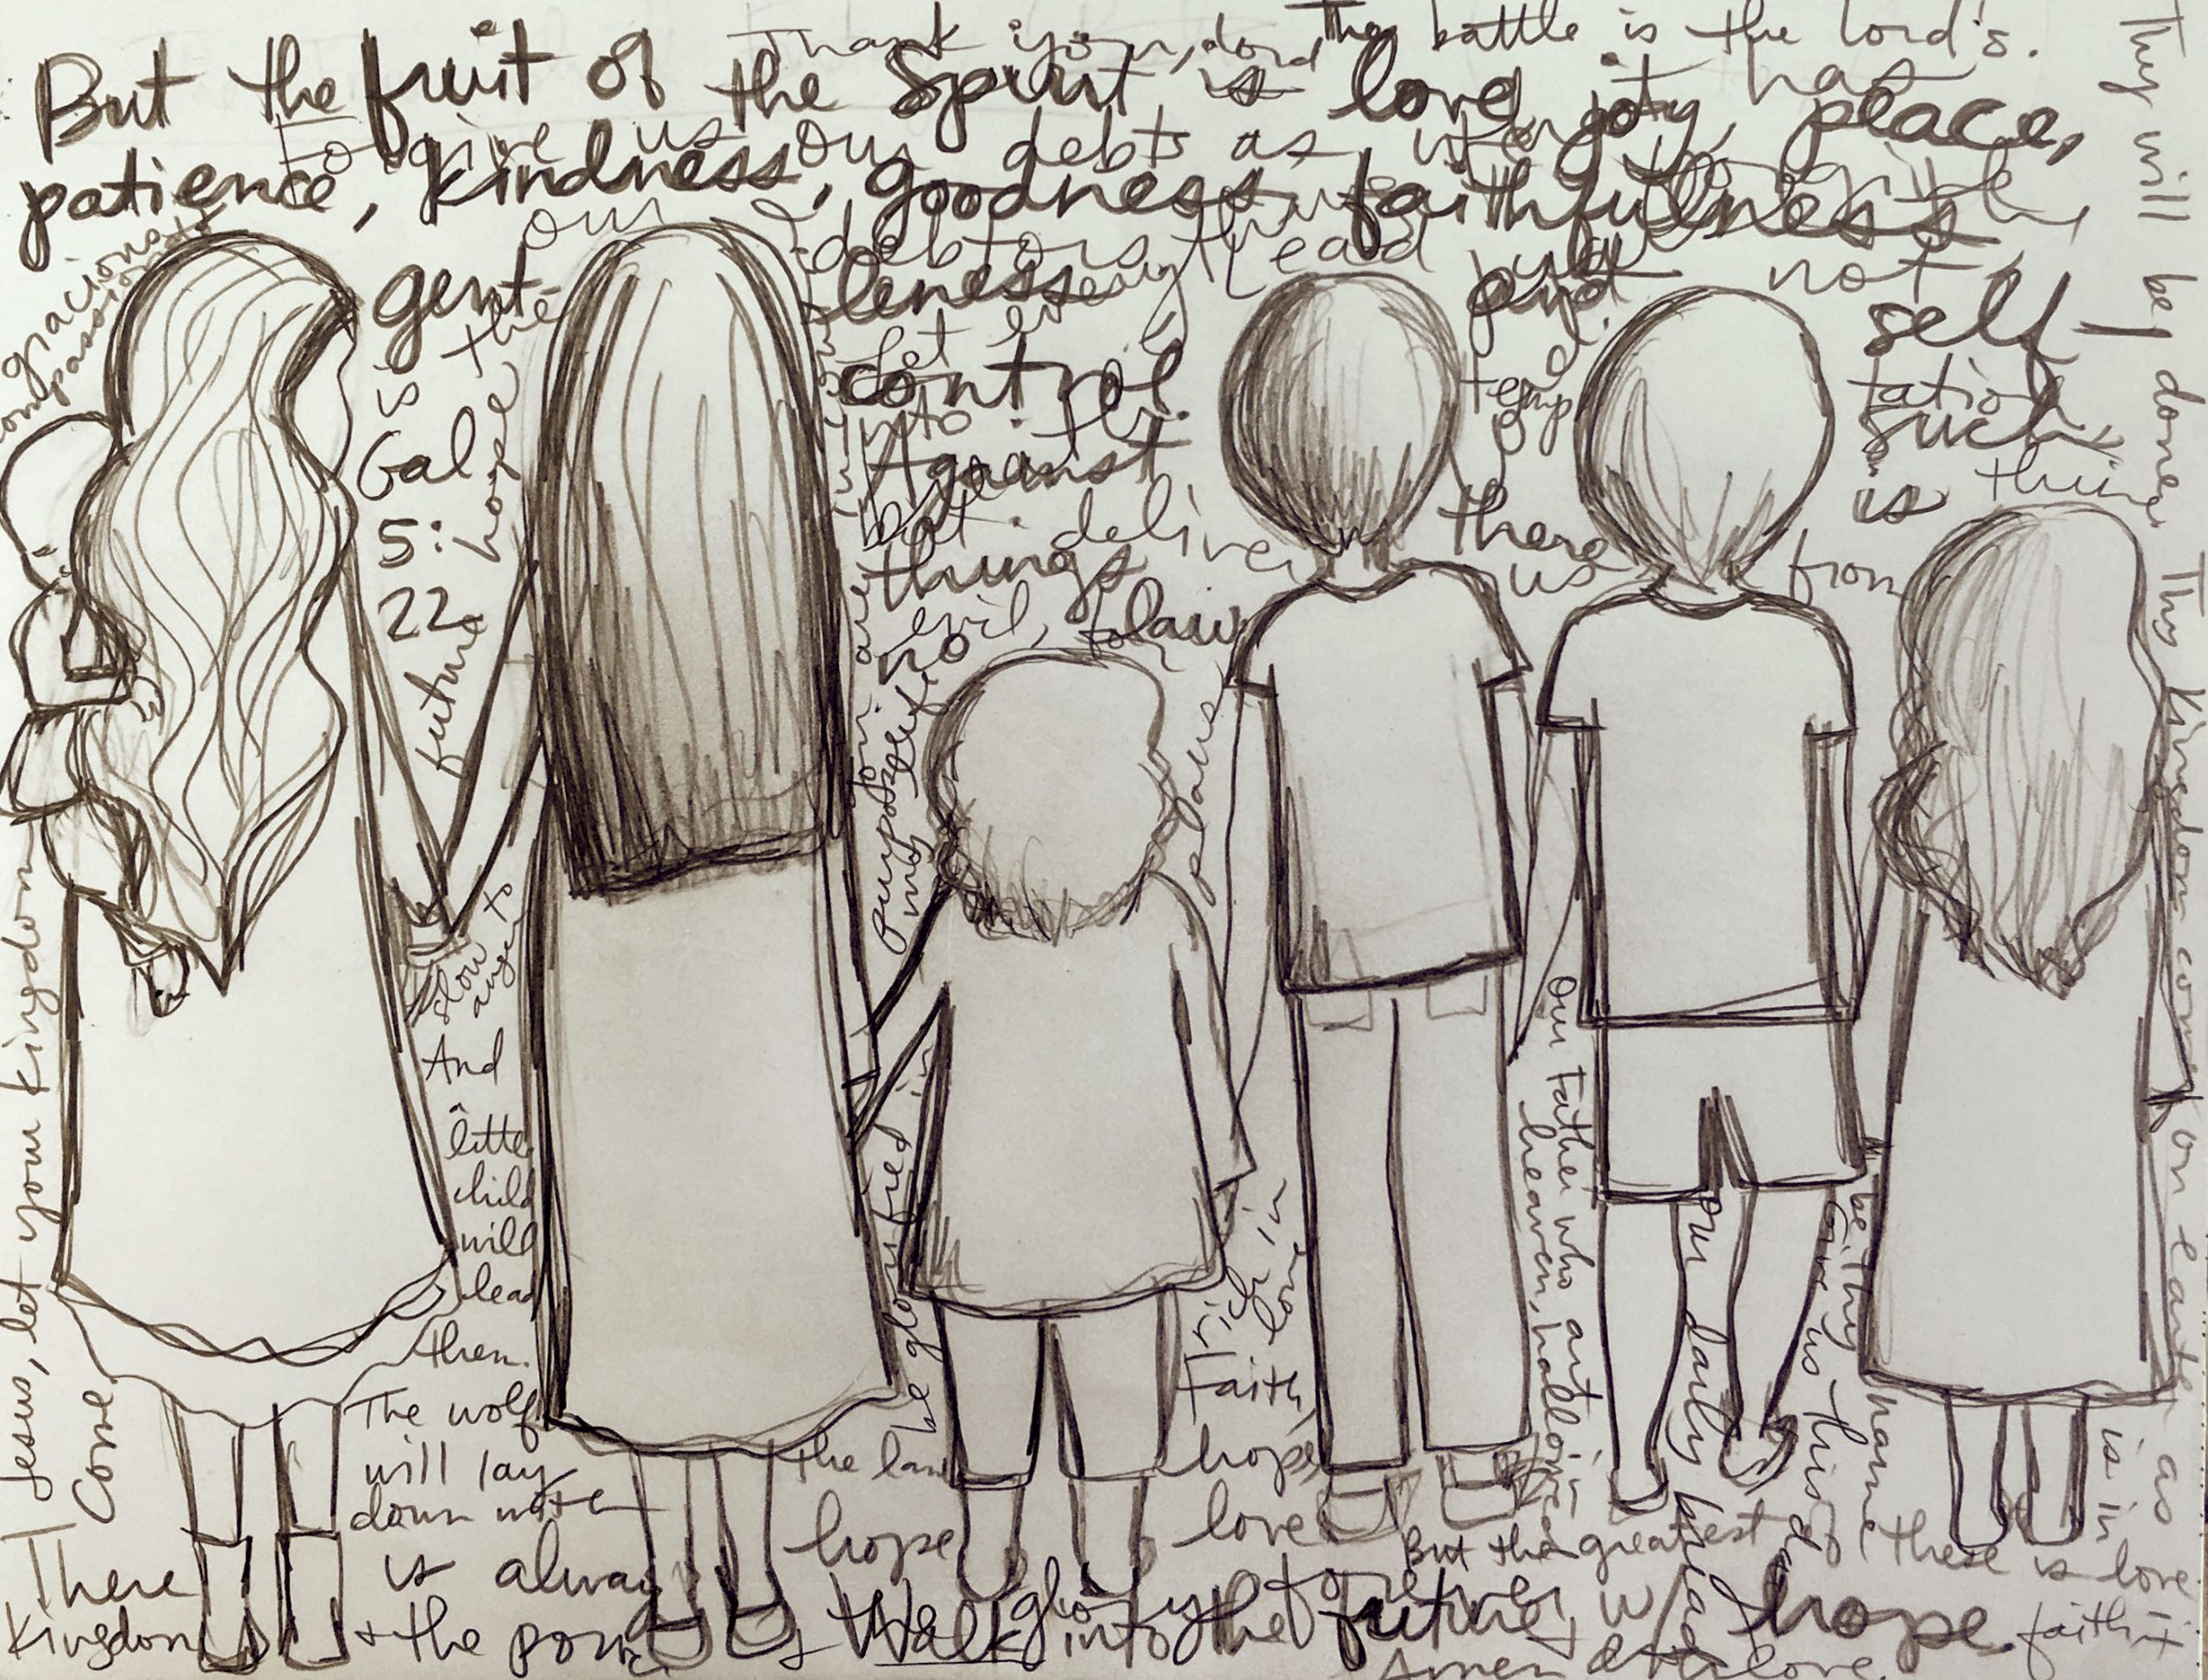 mackenzie chester, pattern, family, homeschool, Christian life, drawing, large family, home, faith, the sacred everyday